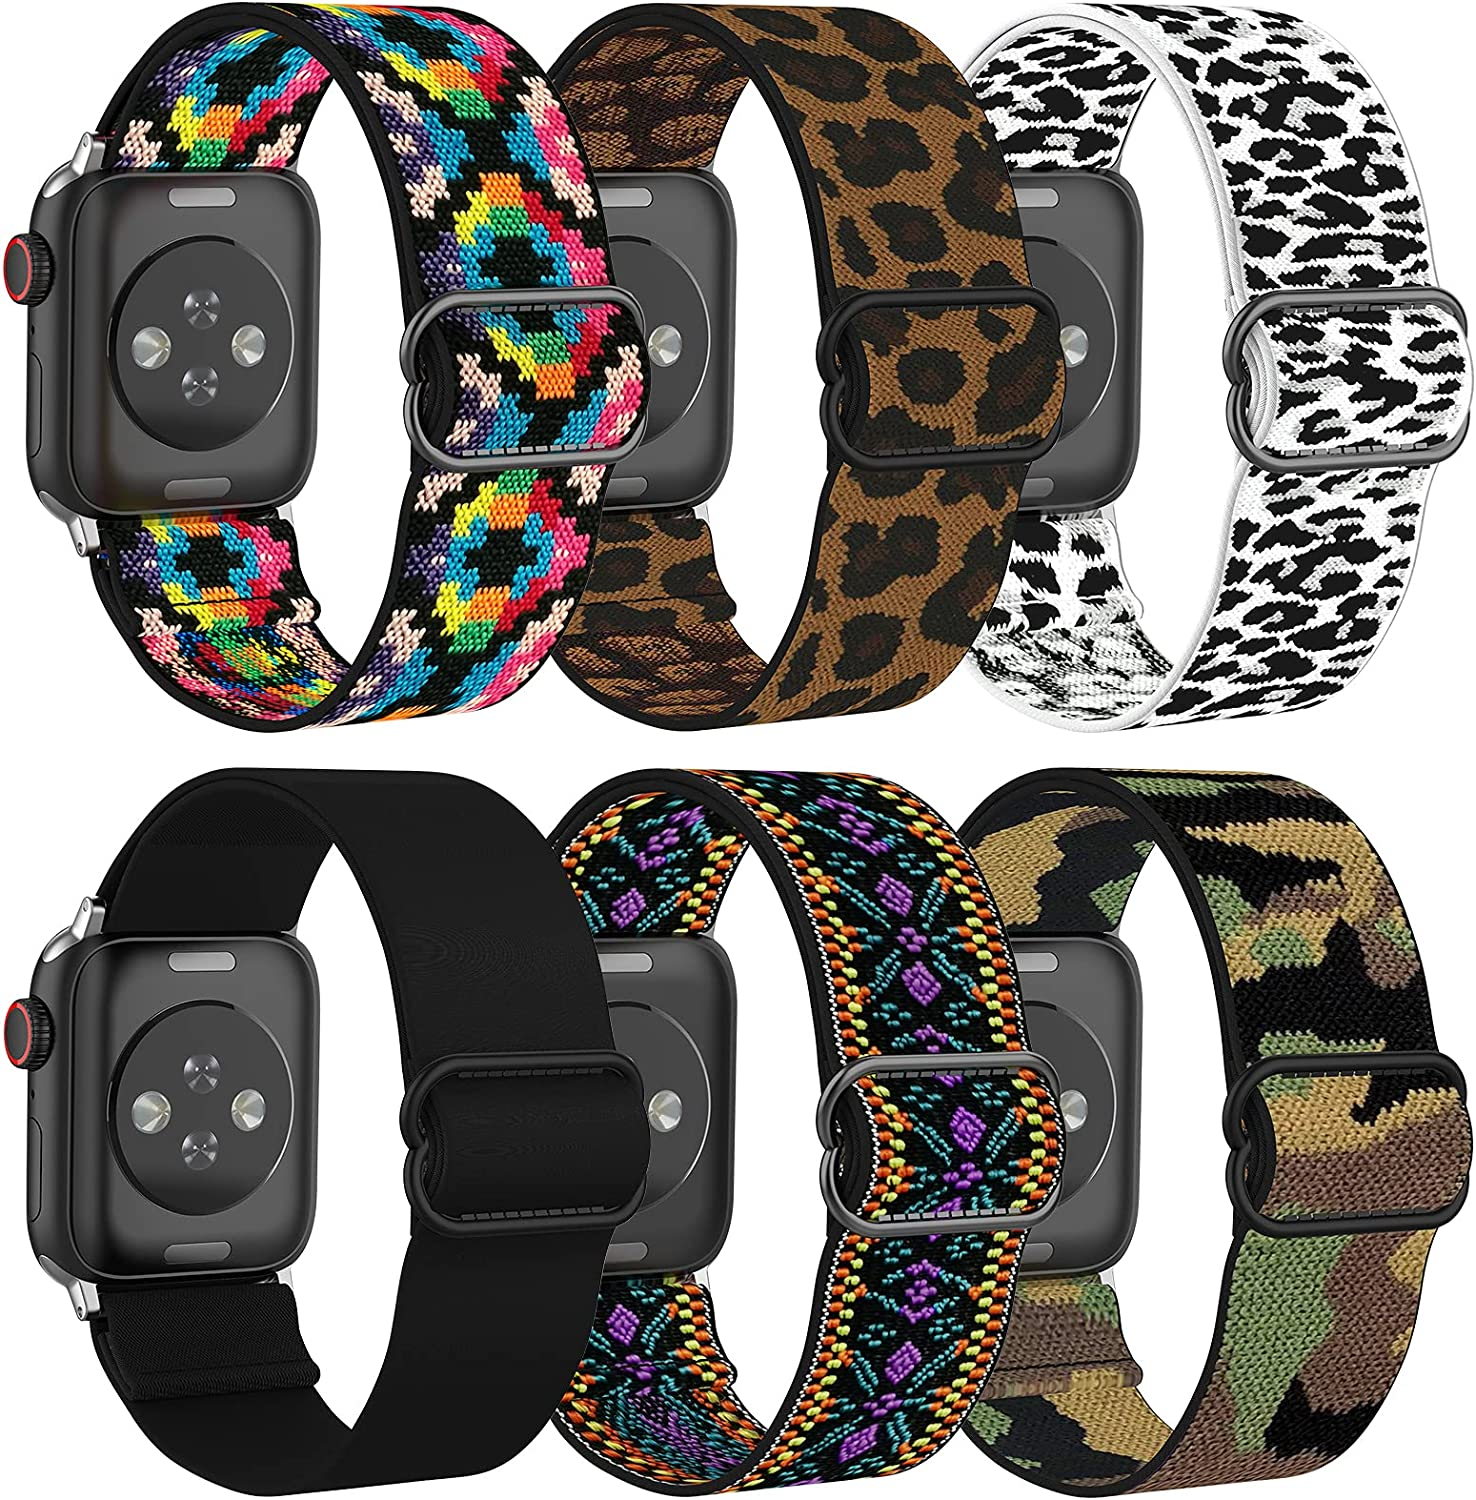 Blueauty Adjustable Elastic Band Compatible with Apple Watch 42mm 44mm, Stretchy Soft Strap for Men/Women Wristband for Apple Watch Series SE/6/5/4/3/2/1